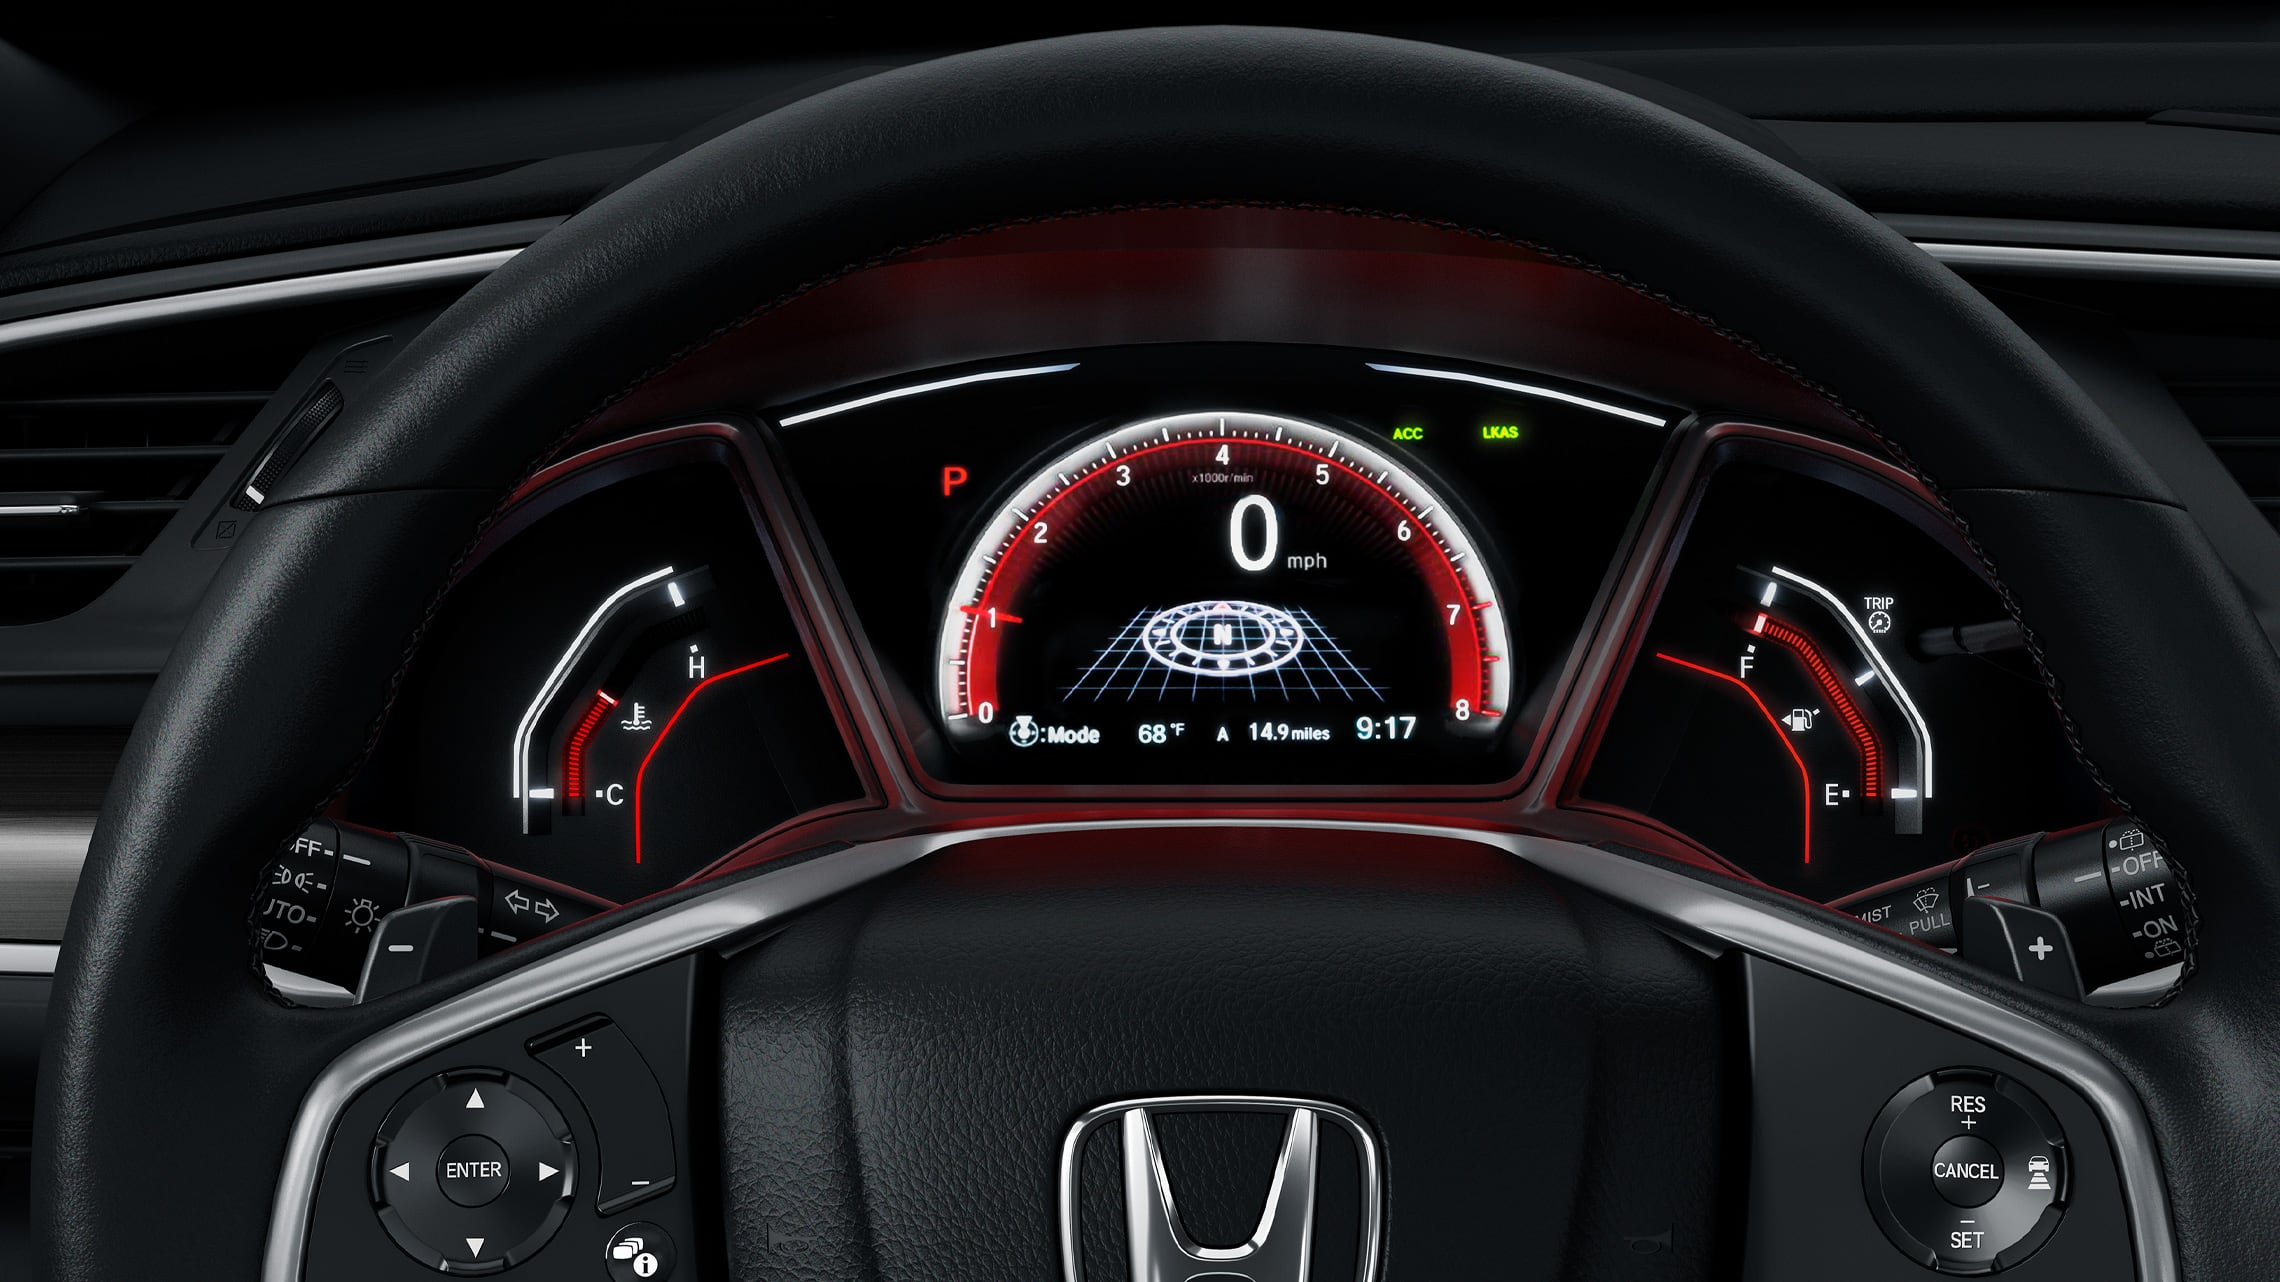 Interior view of steering wheel and dash in 2020 Honda Civic Sport Touring Hatchback in Black Leather.